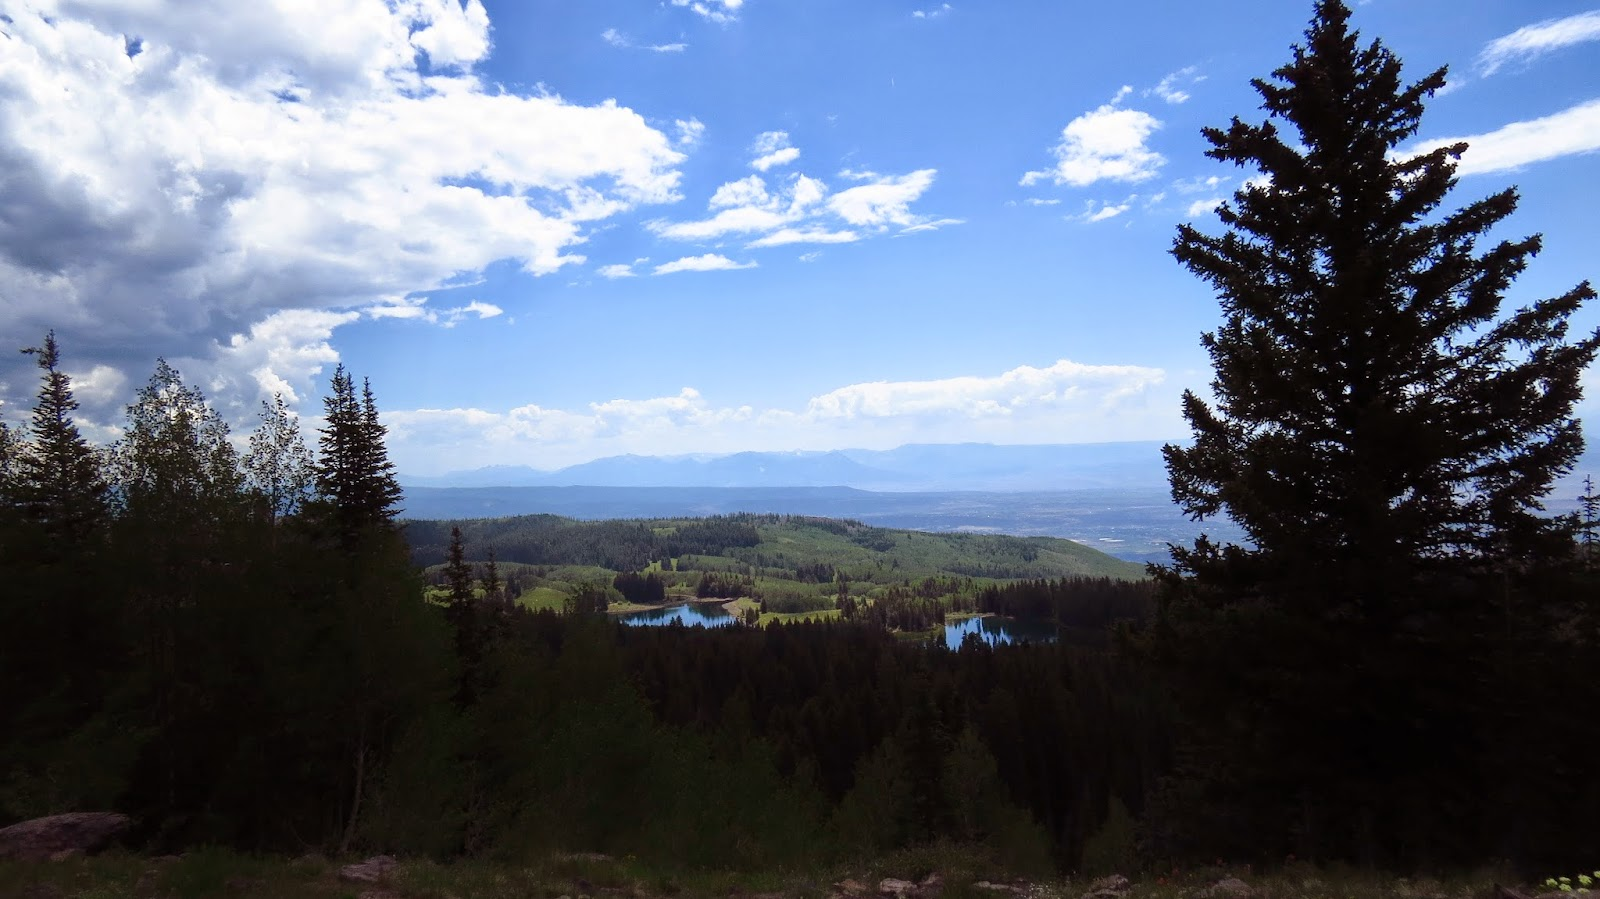 A view from Grand Mesa, Colorado